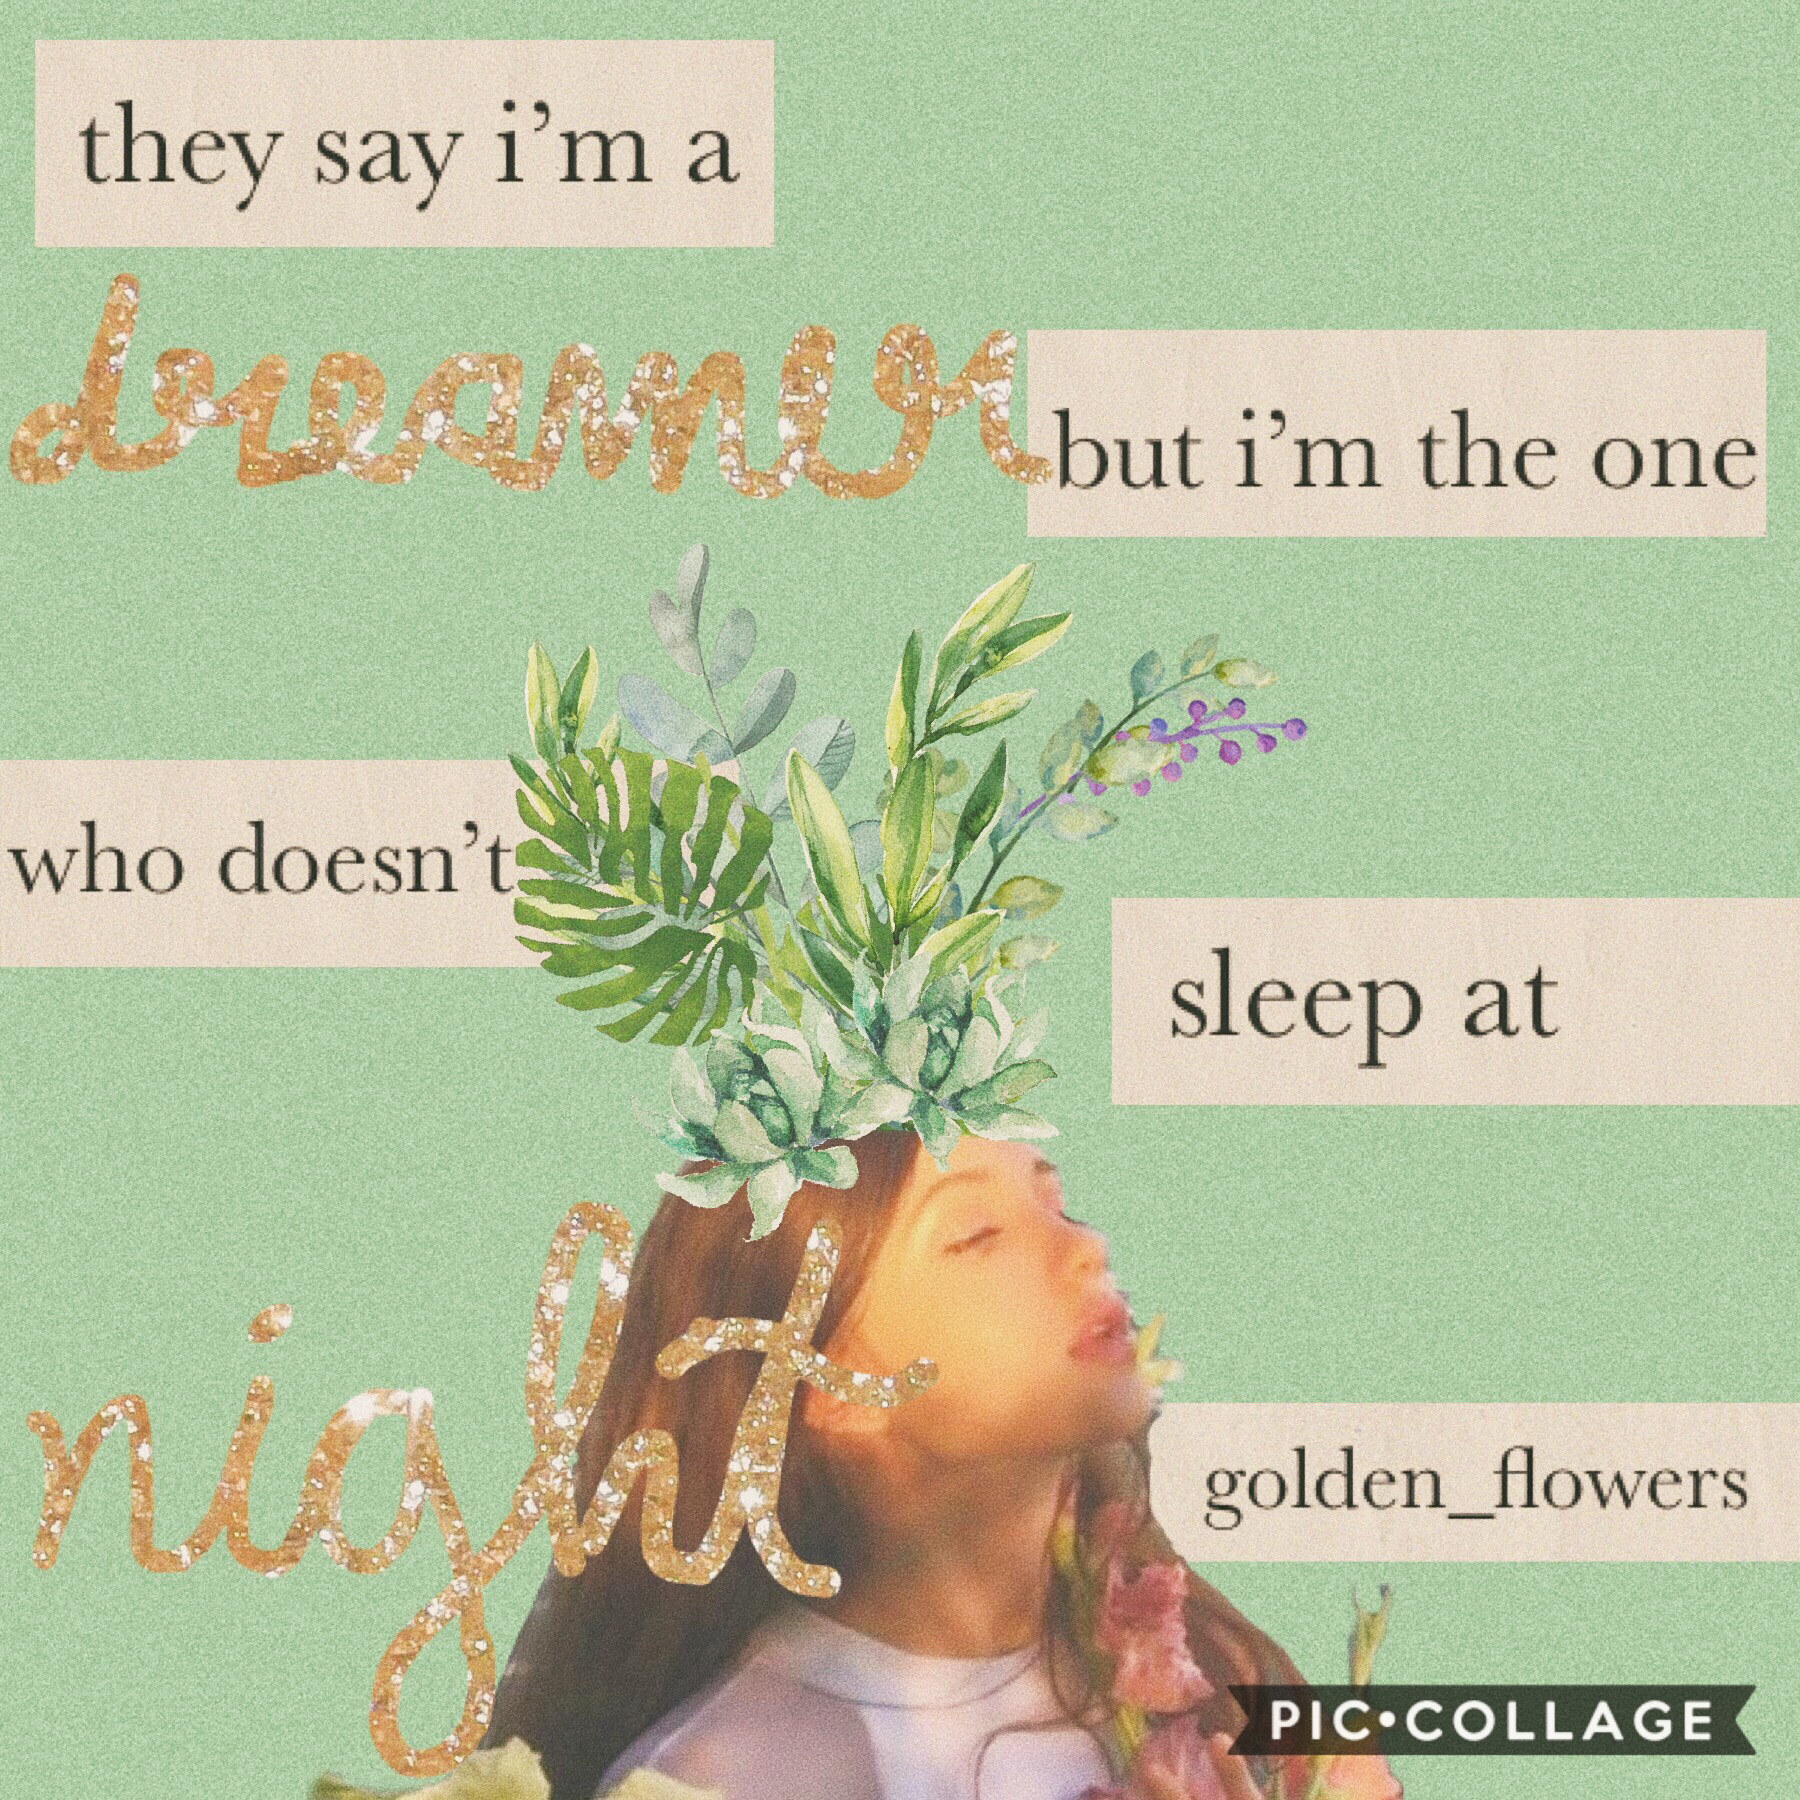 {🌾tap🌾} inspired by a drawing made by @love_the_worldx3(sorry if i got that wrong)and for -apollo-'s games:)